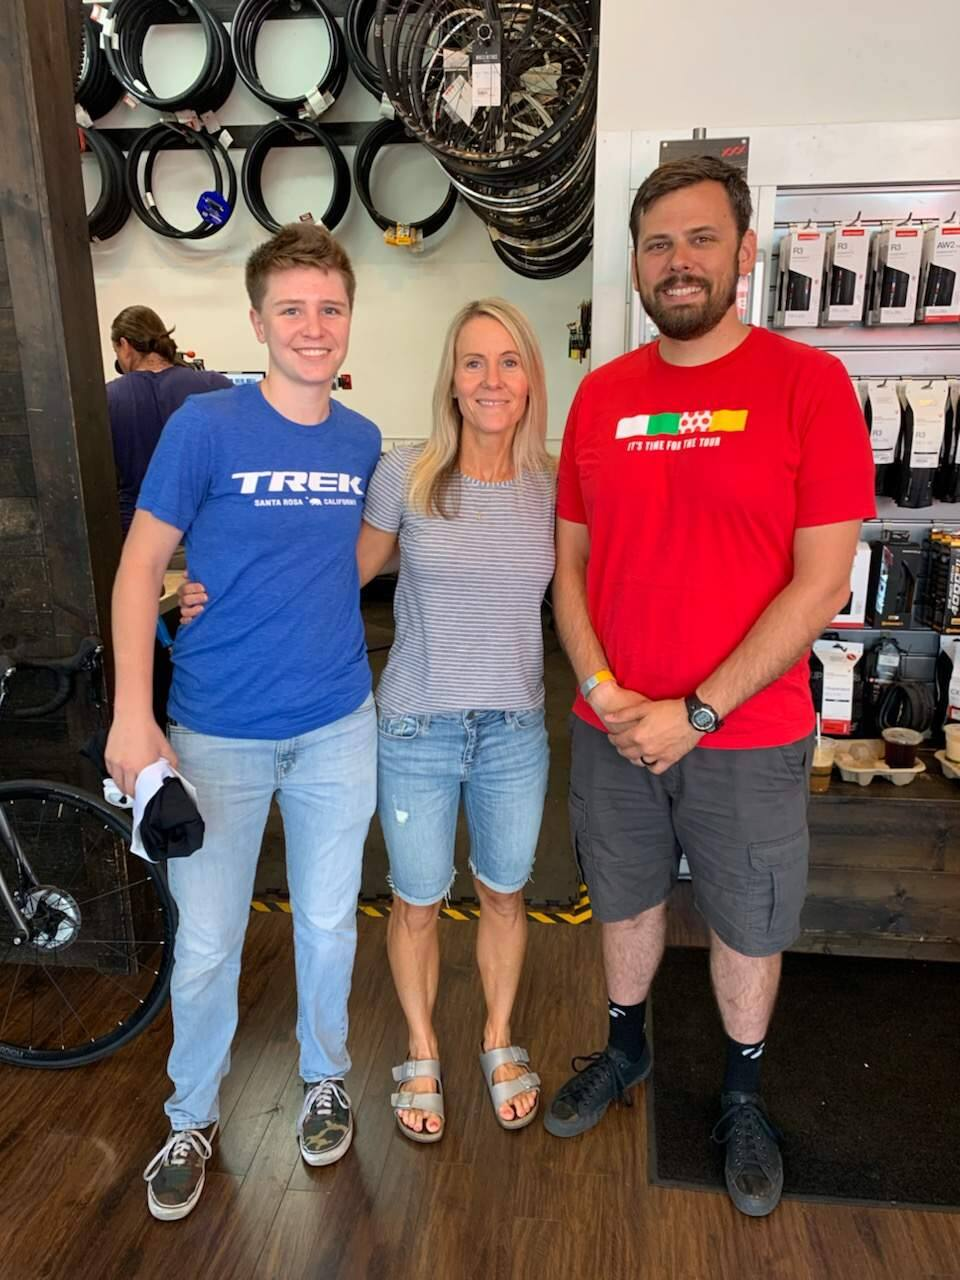 Marisa Denison, center, poses Saturday between Brianna Peebles, left, and Matt Roark of the Trek Bicycle store in Santa Rosa. Denison earlier finished the Ironman 70.3 Santa Rosa with the help of a bike gifted to her by the Trek store after a thief stole the bicycle she intended to ride. (Courtesy of Marisa Denison)